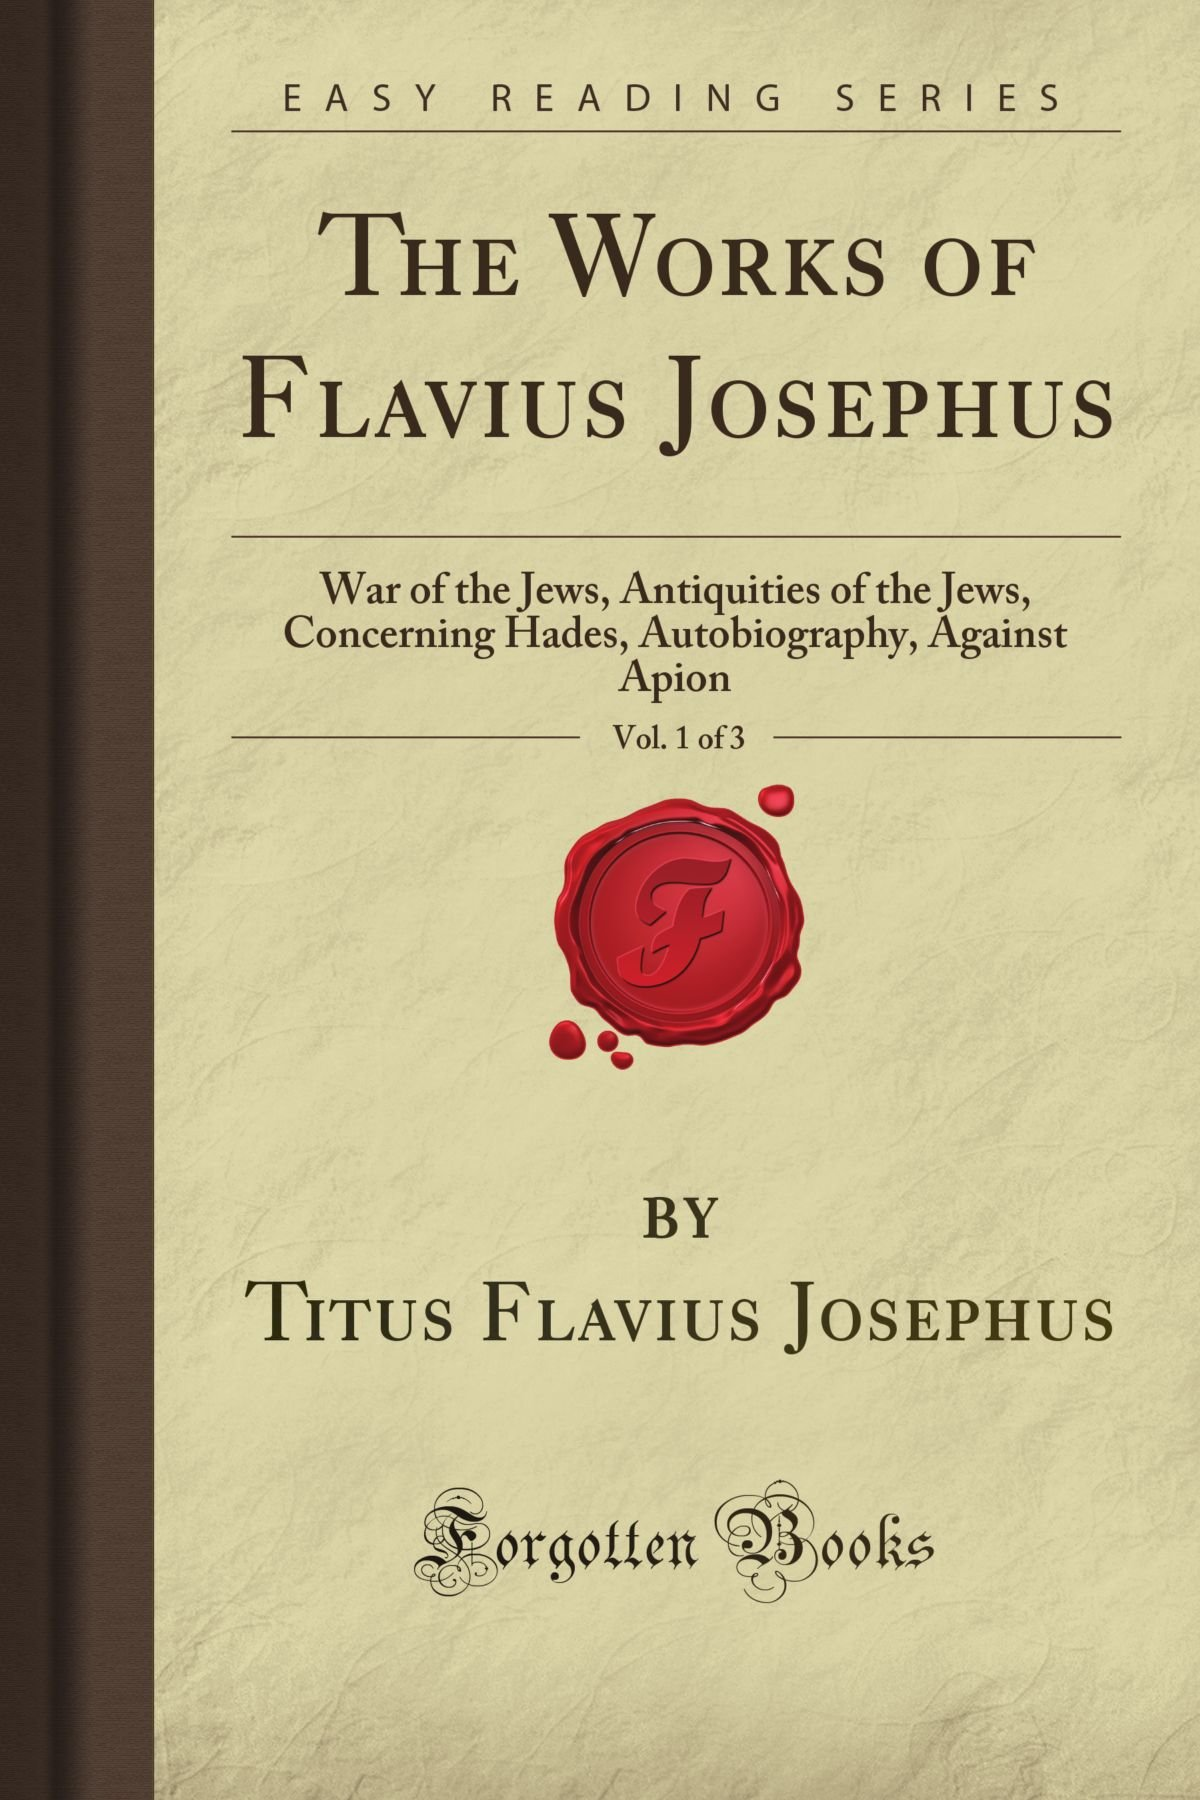 Download The Works of Flavius Josephus, Vol. 1 of 3: War of the Jews, Antiquities of the Jews, Concerning Hades, Autobiography, Against Apion (Forgotten Books) pdf